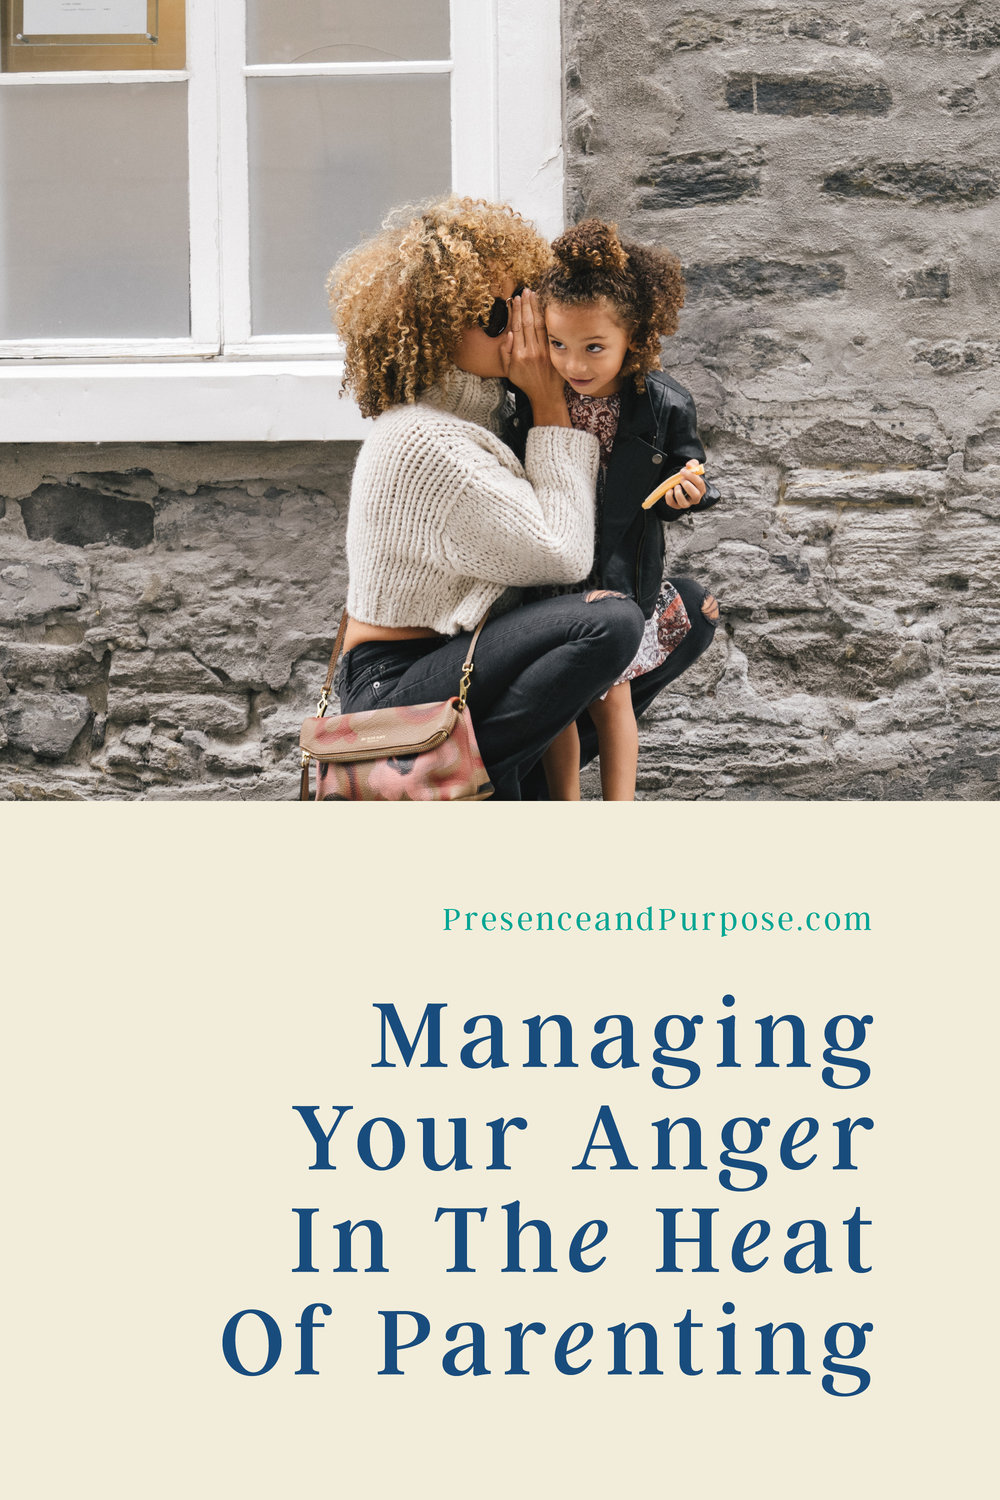 19_0318_Managing Your Anger In The Heat Of Parenting.jpg